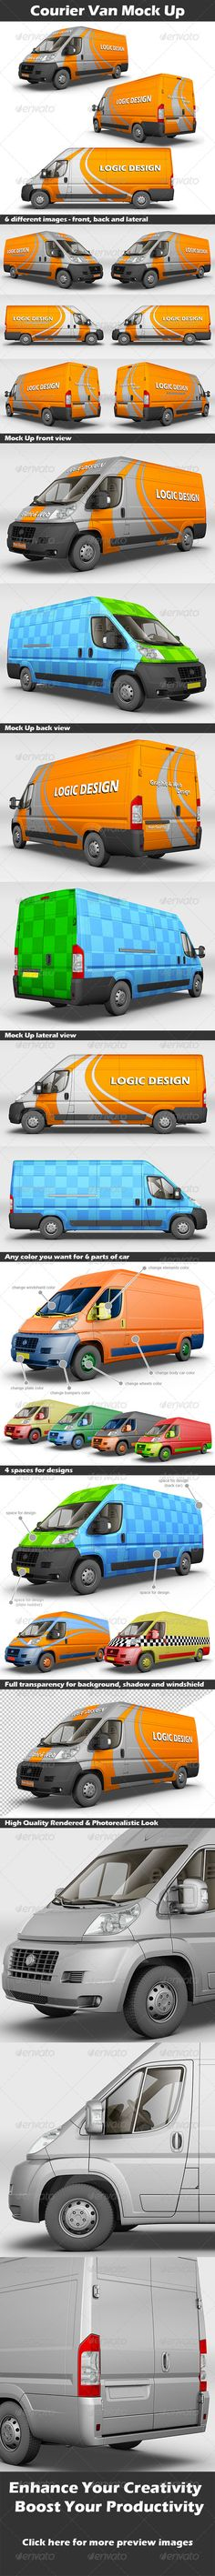 Courier Van Mock Up - Product Mock-Ups Graphics